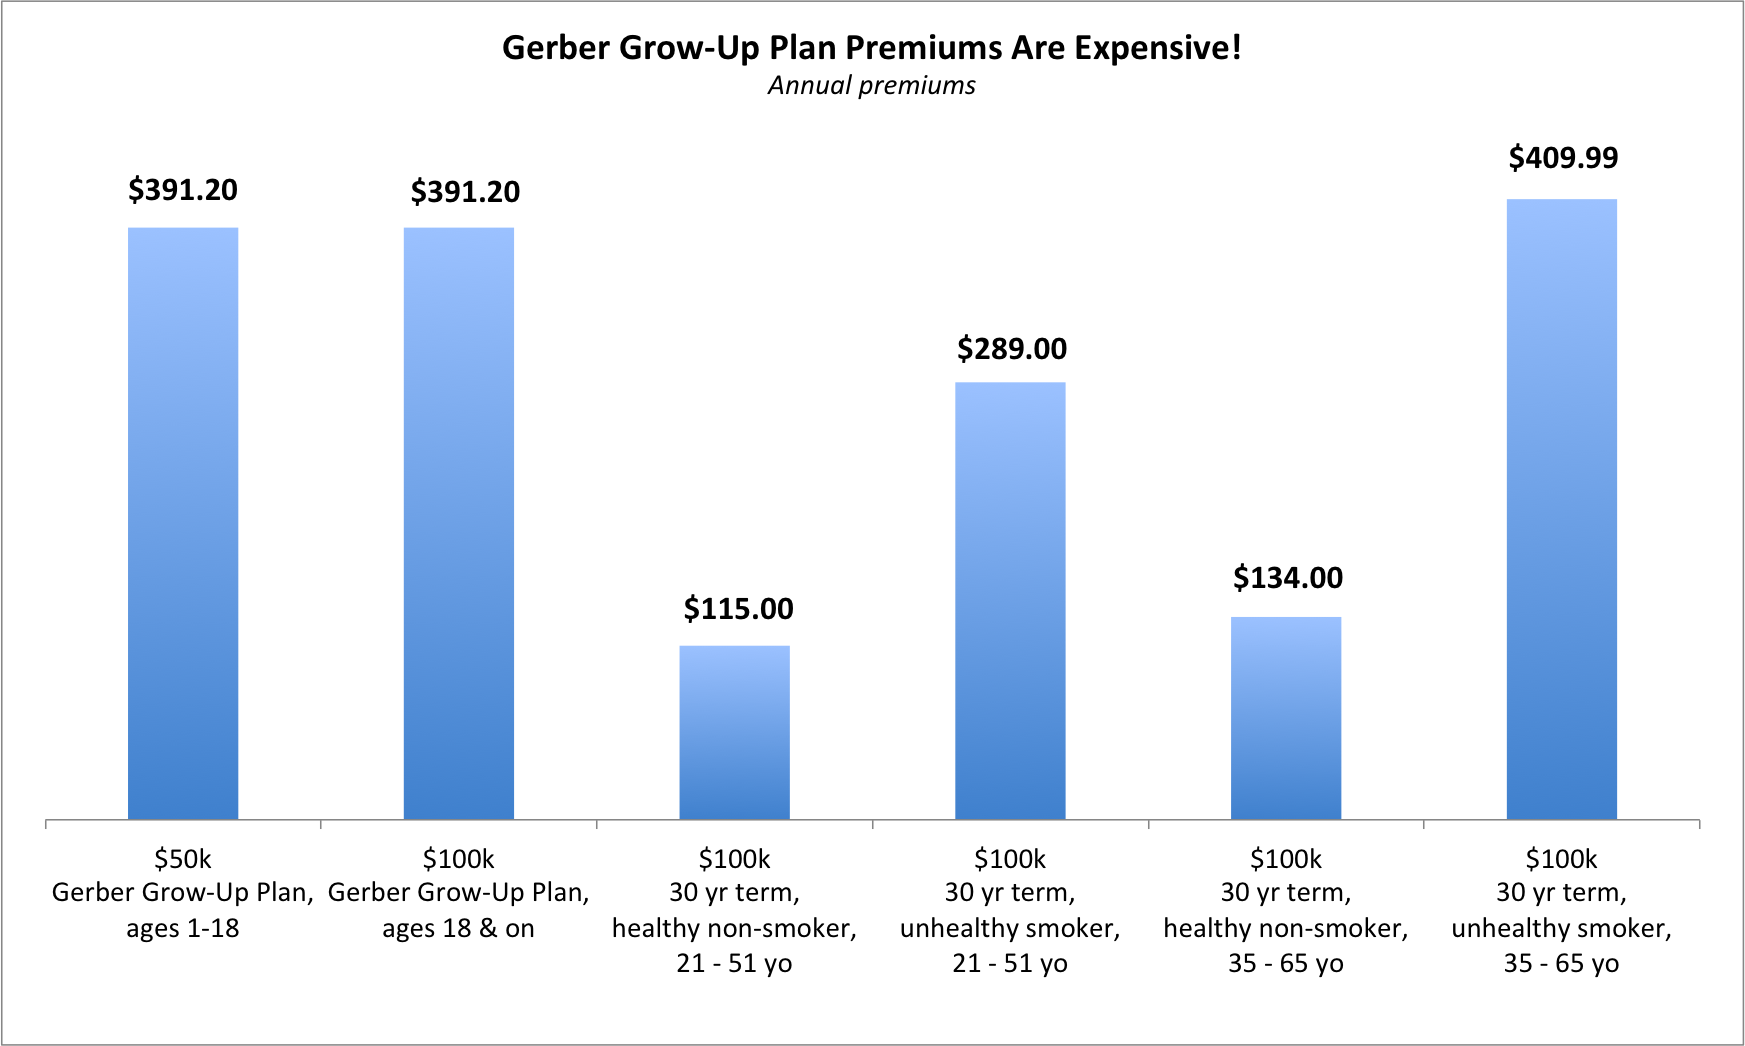 gerber-grow-up-plan-premiums-are-expensive-part-1-of-2